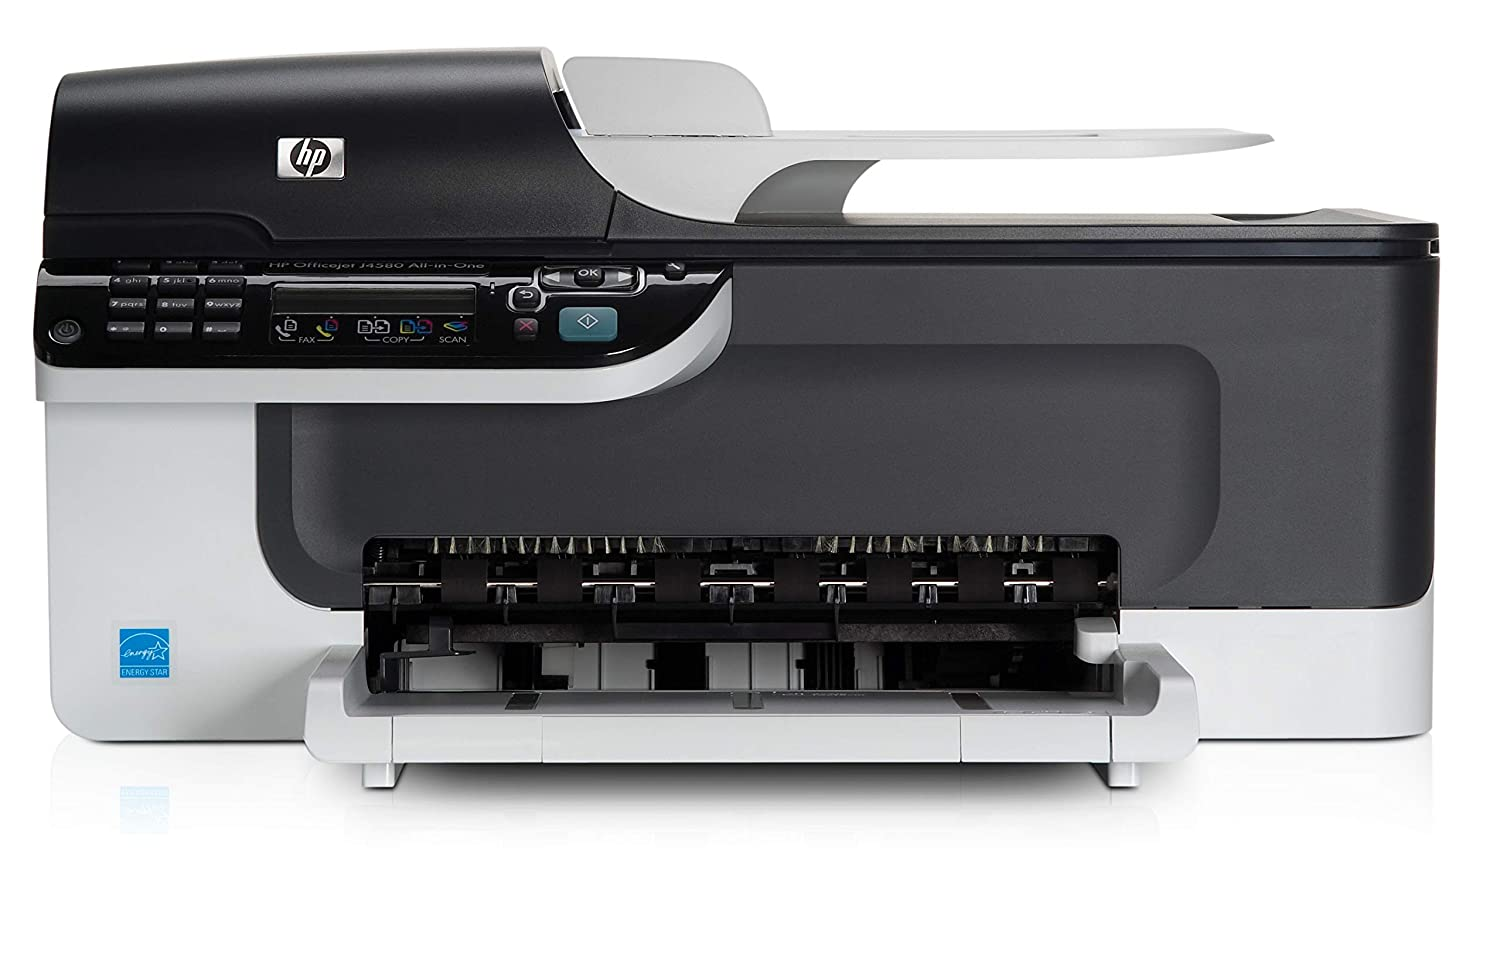 Amazon.com: HP Officejet J4540 All-in-One: Office Products